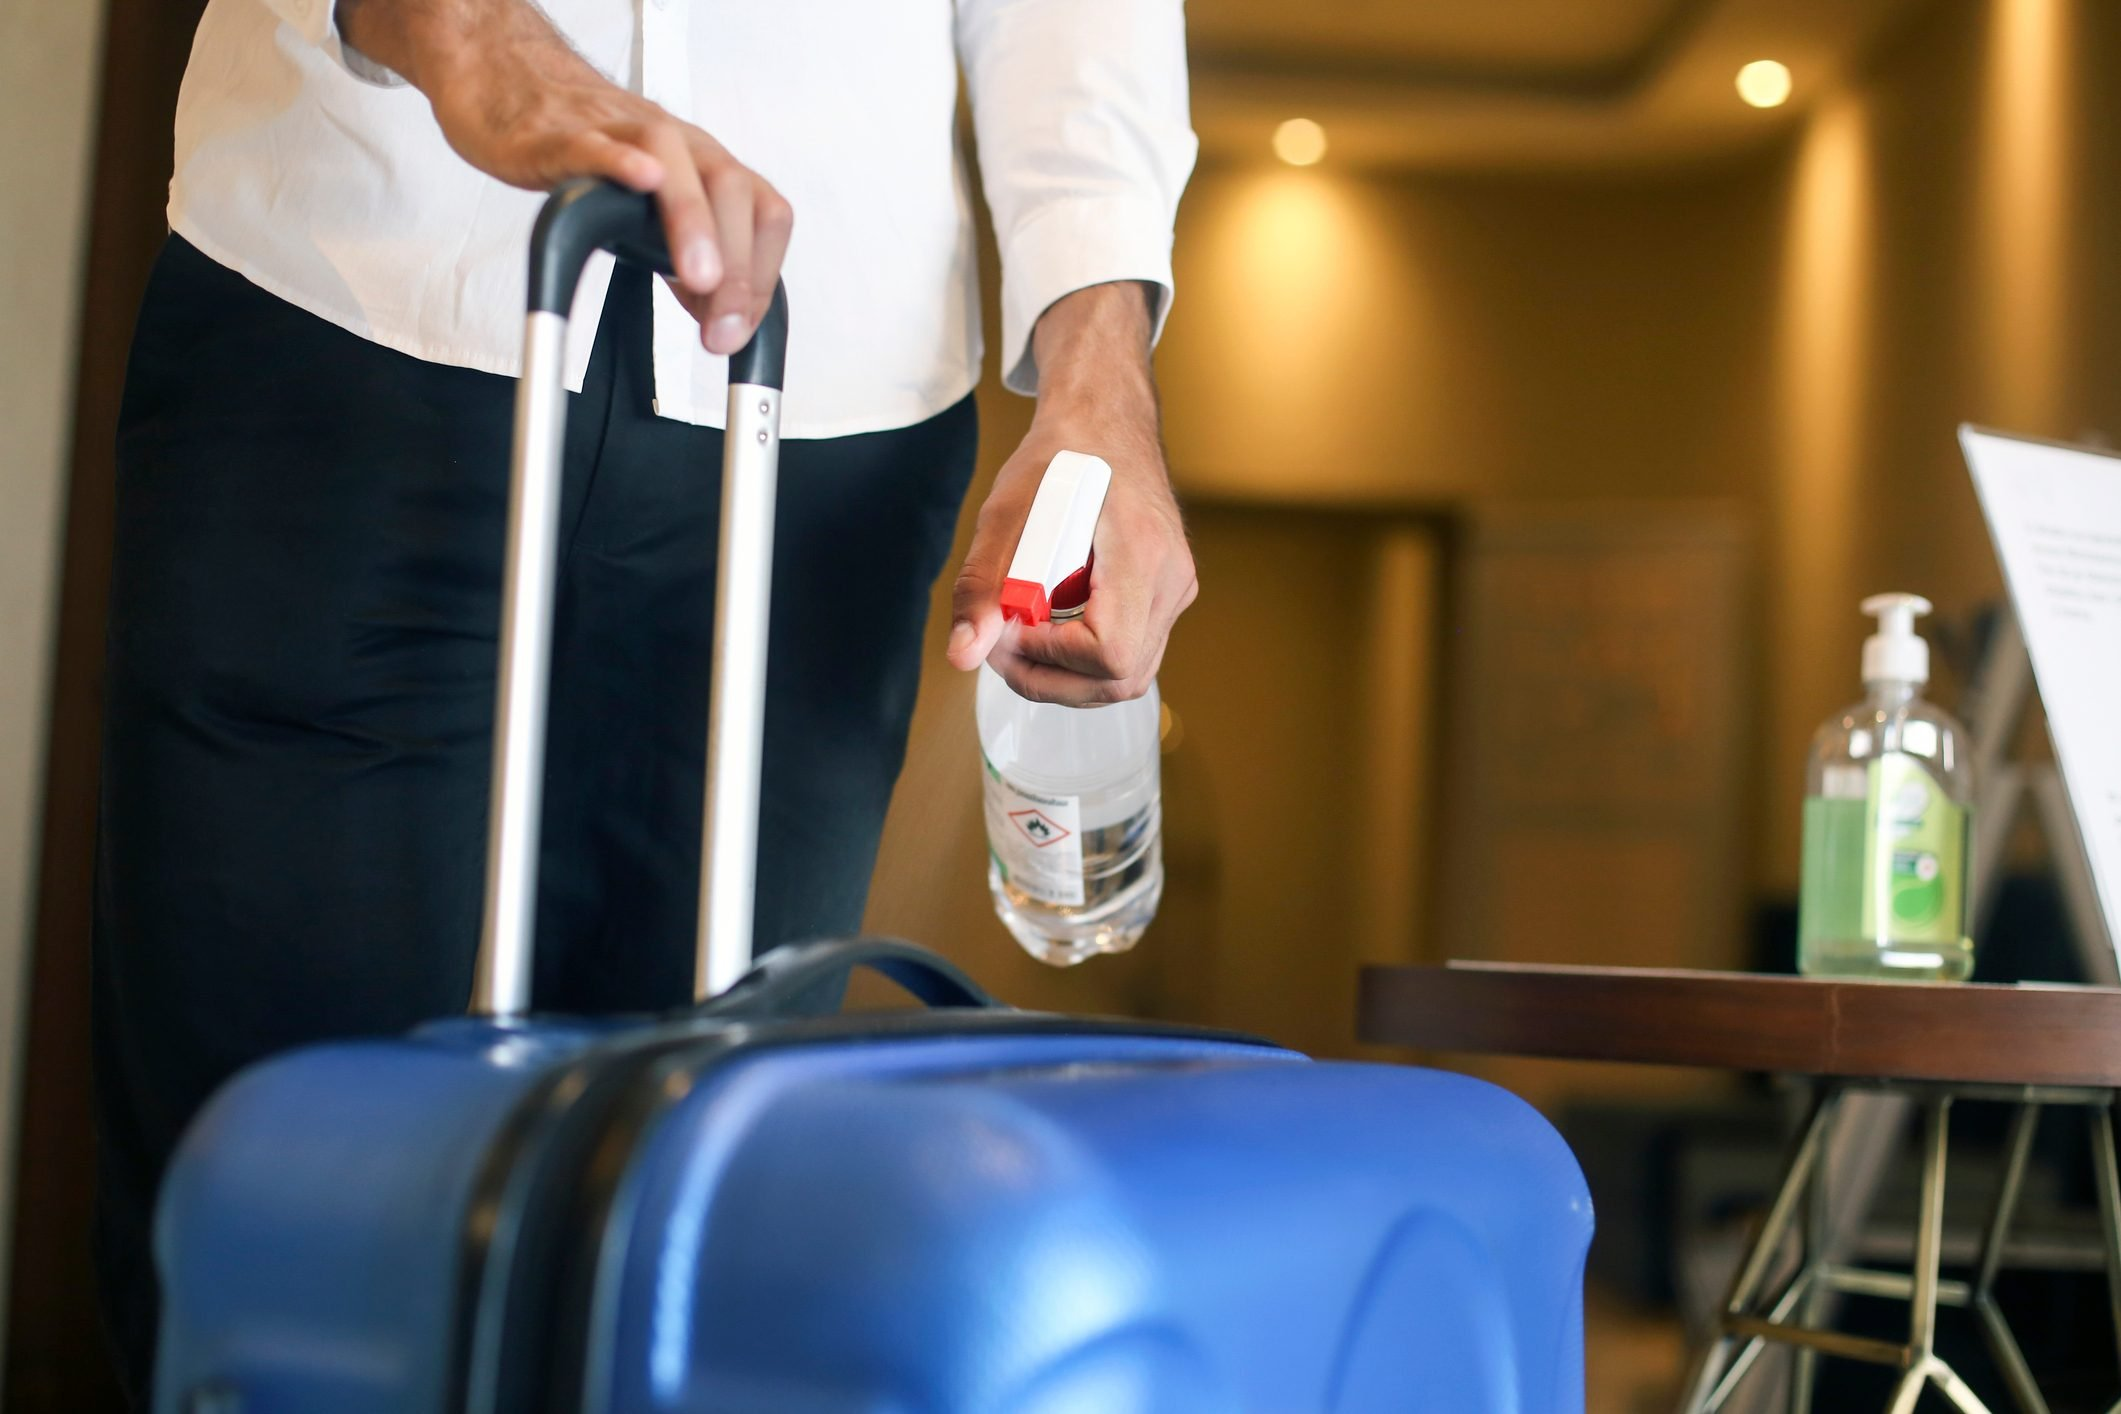 Disinfecting a suitcase